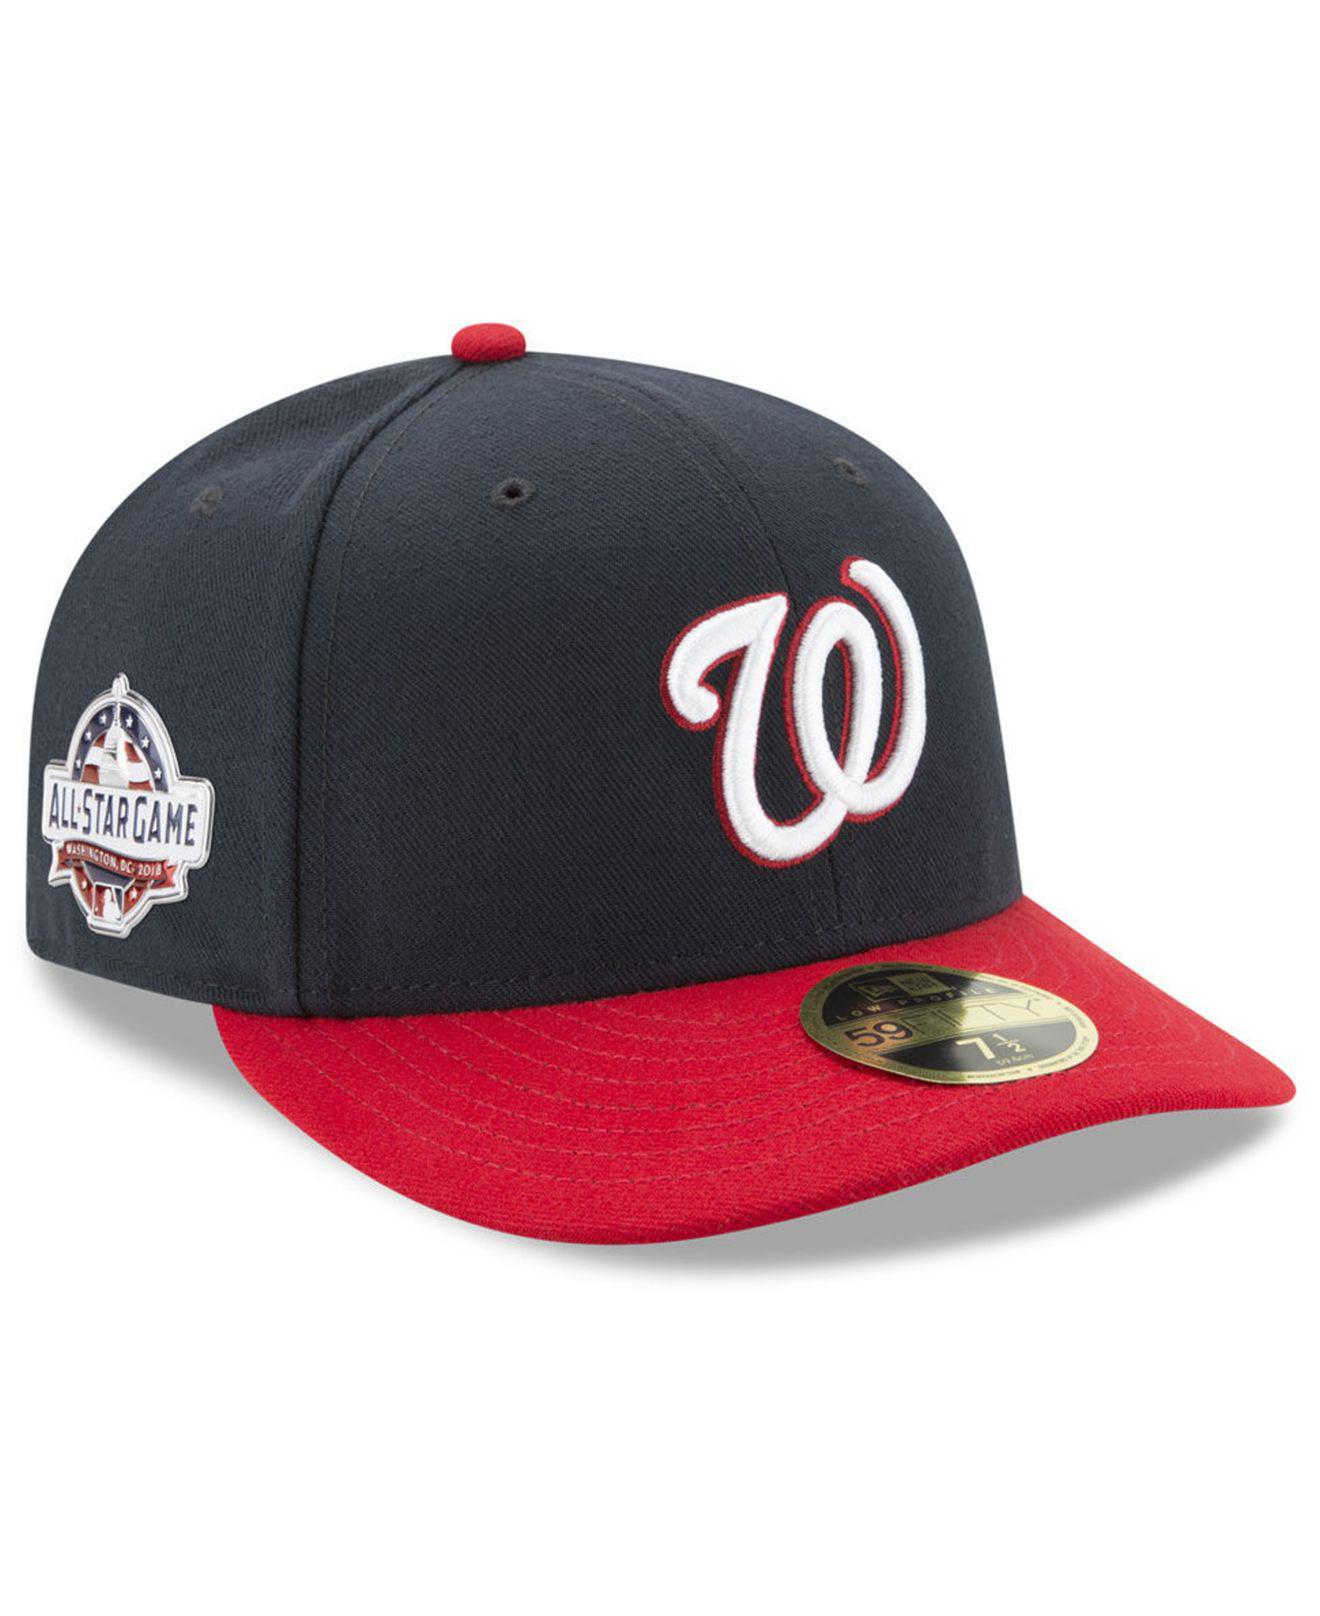 watch db950 8095c KTZ. Men s Blue Washington Nationals Washington All Star Game Patch Low  Profile 59fifty Fitted Cap